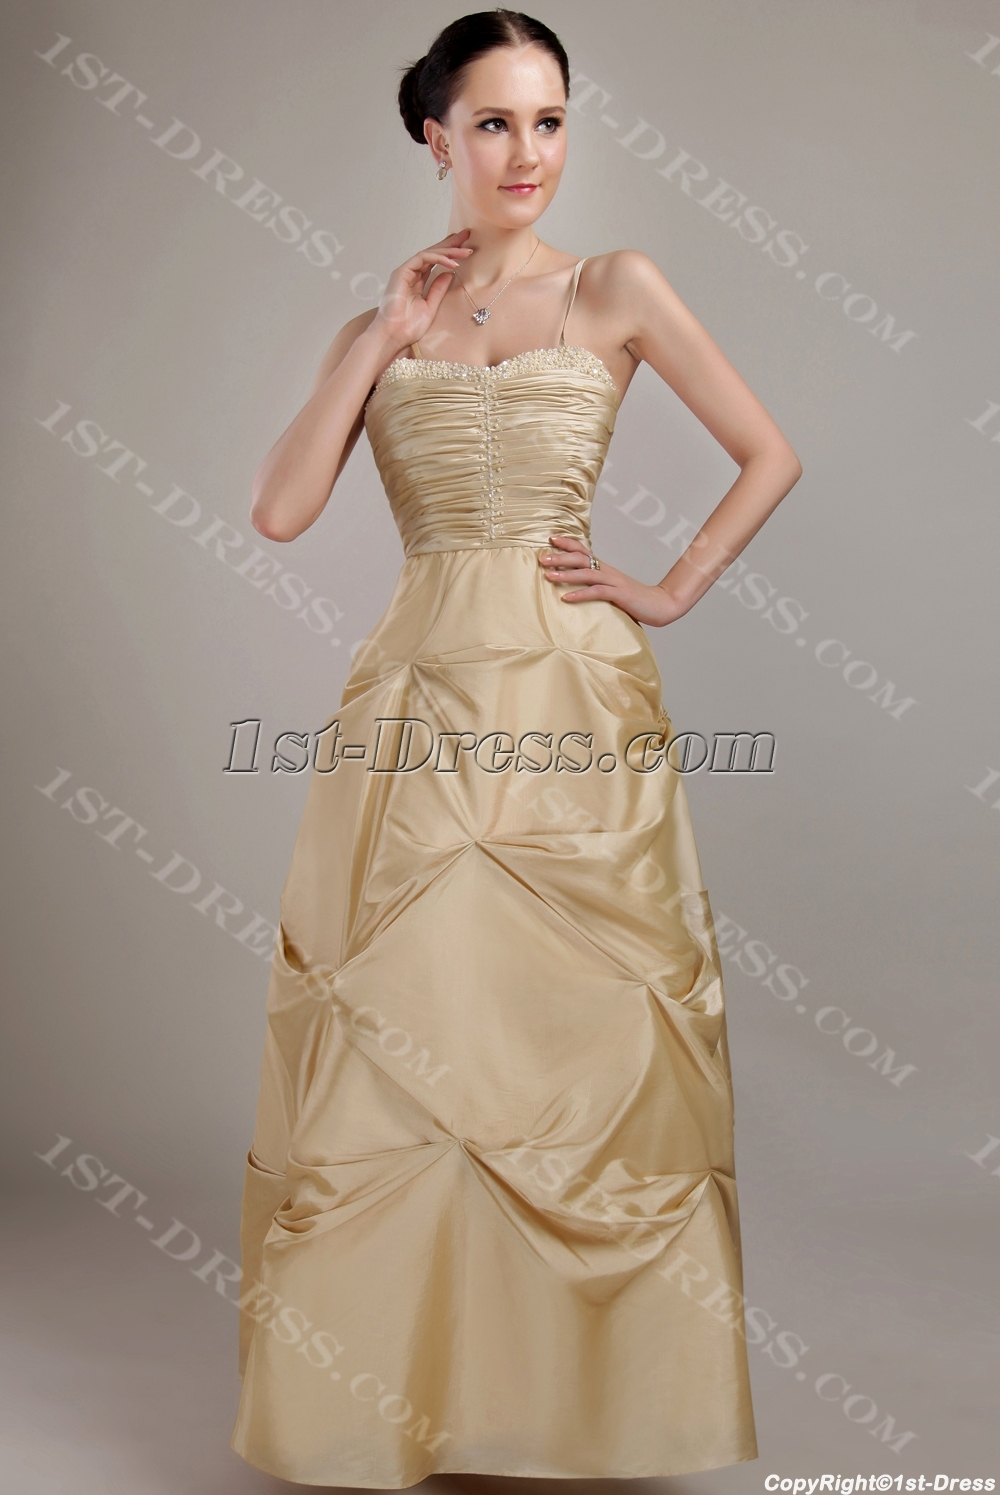 images/201304/big/Champagne-Long-Plus-Size-Ball-Gown-Prom-Dresses-IMG_3008-1046-b-1-1366105630.jpg